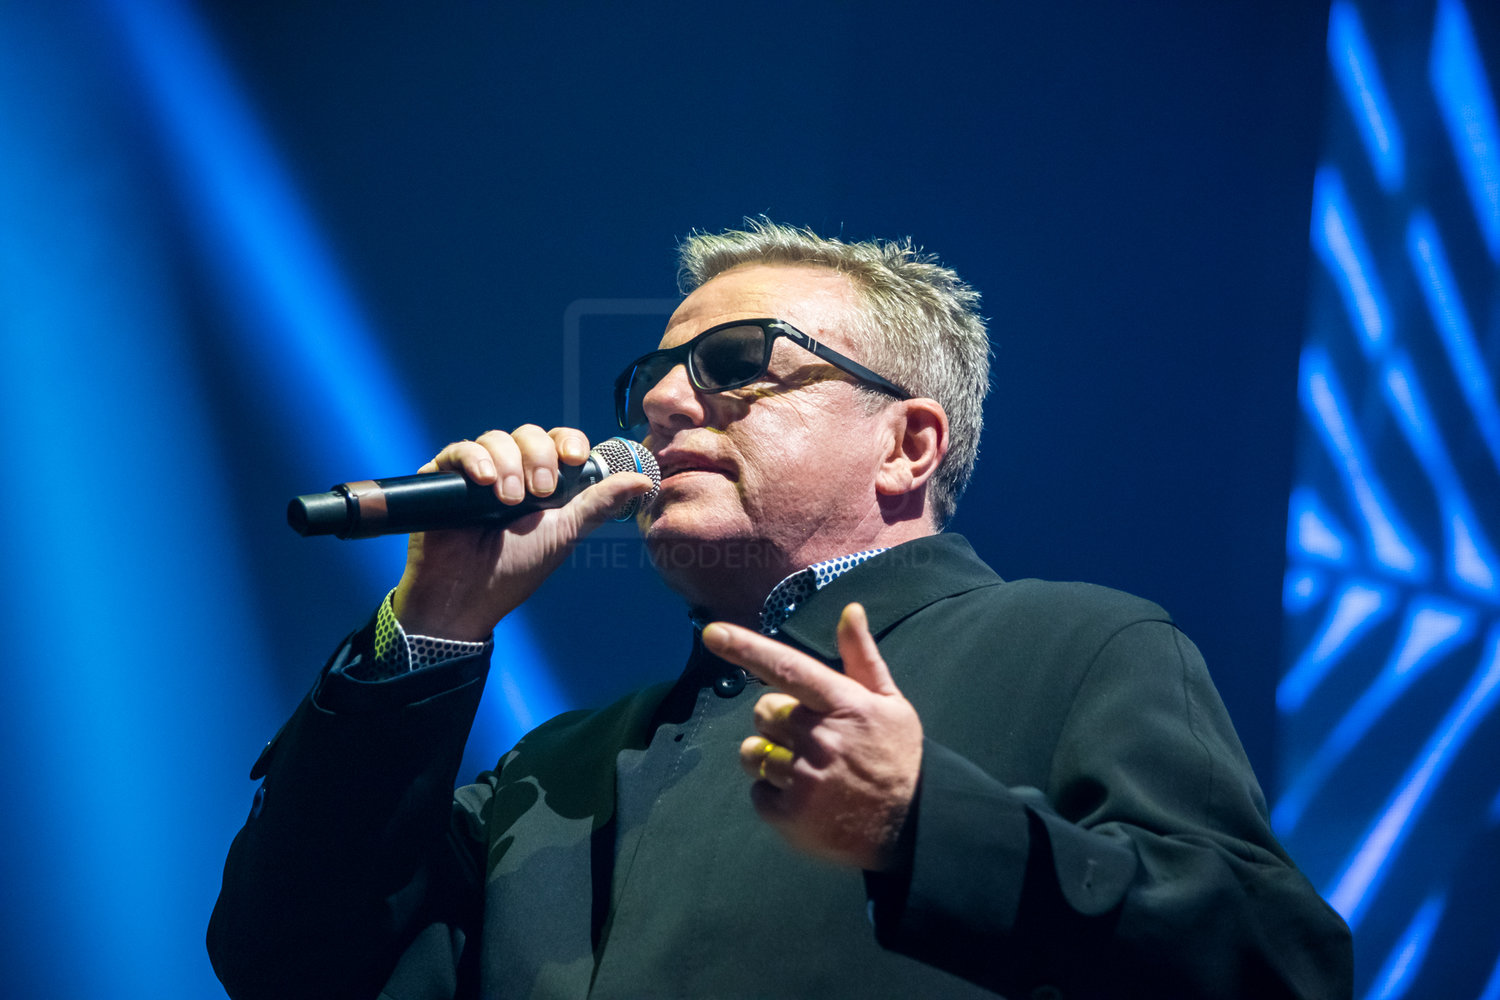 MADNESS PERFORMING AT GLASGOW'S SSE HYDRO - 17.12.2018 PICTURE BY: STEPHEN WILSON PHOTOGRAPHY